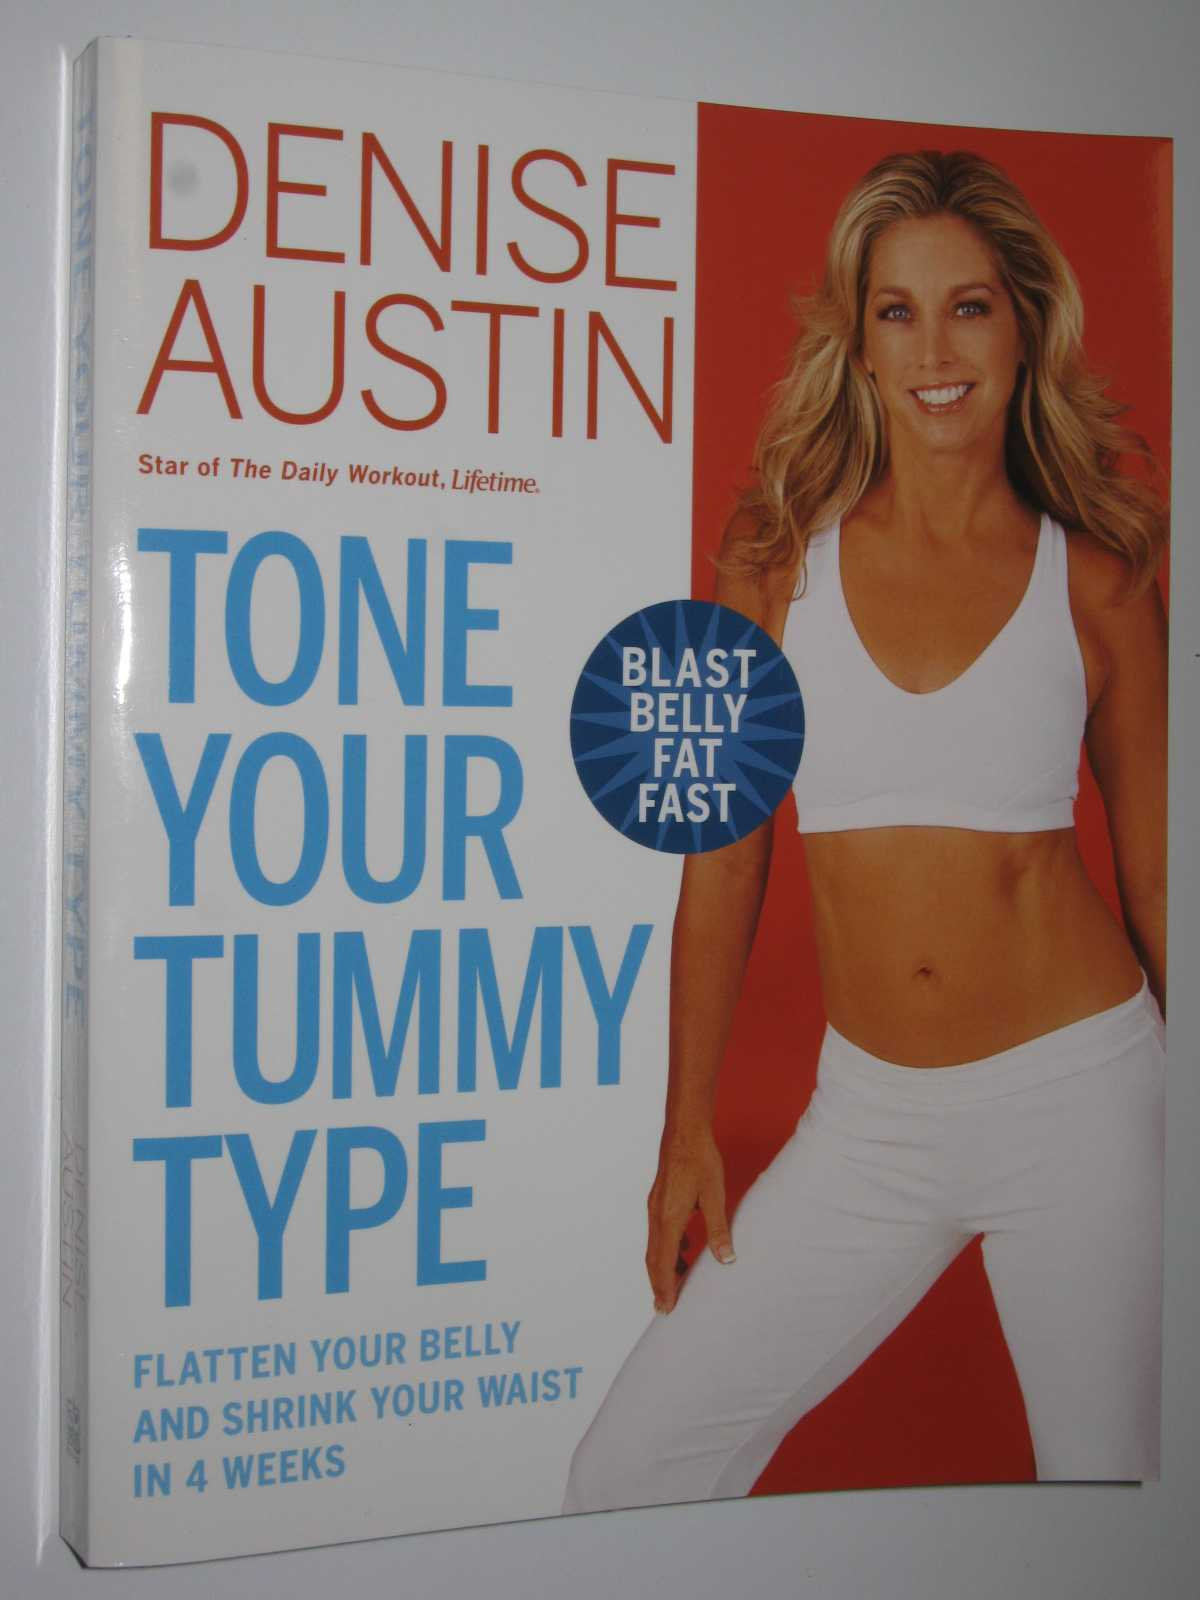 Tone Your Tummy Type : Flatten Your Belly and Shrink Your Waist in 4 Weeks, Austin,Denise